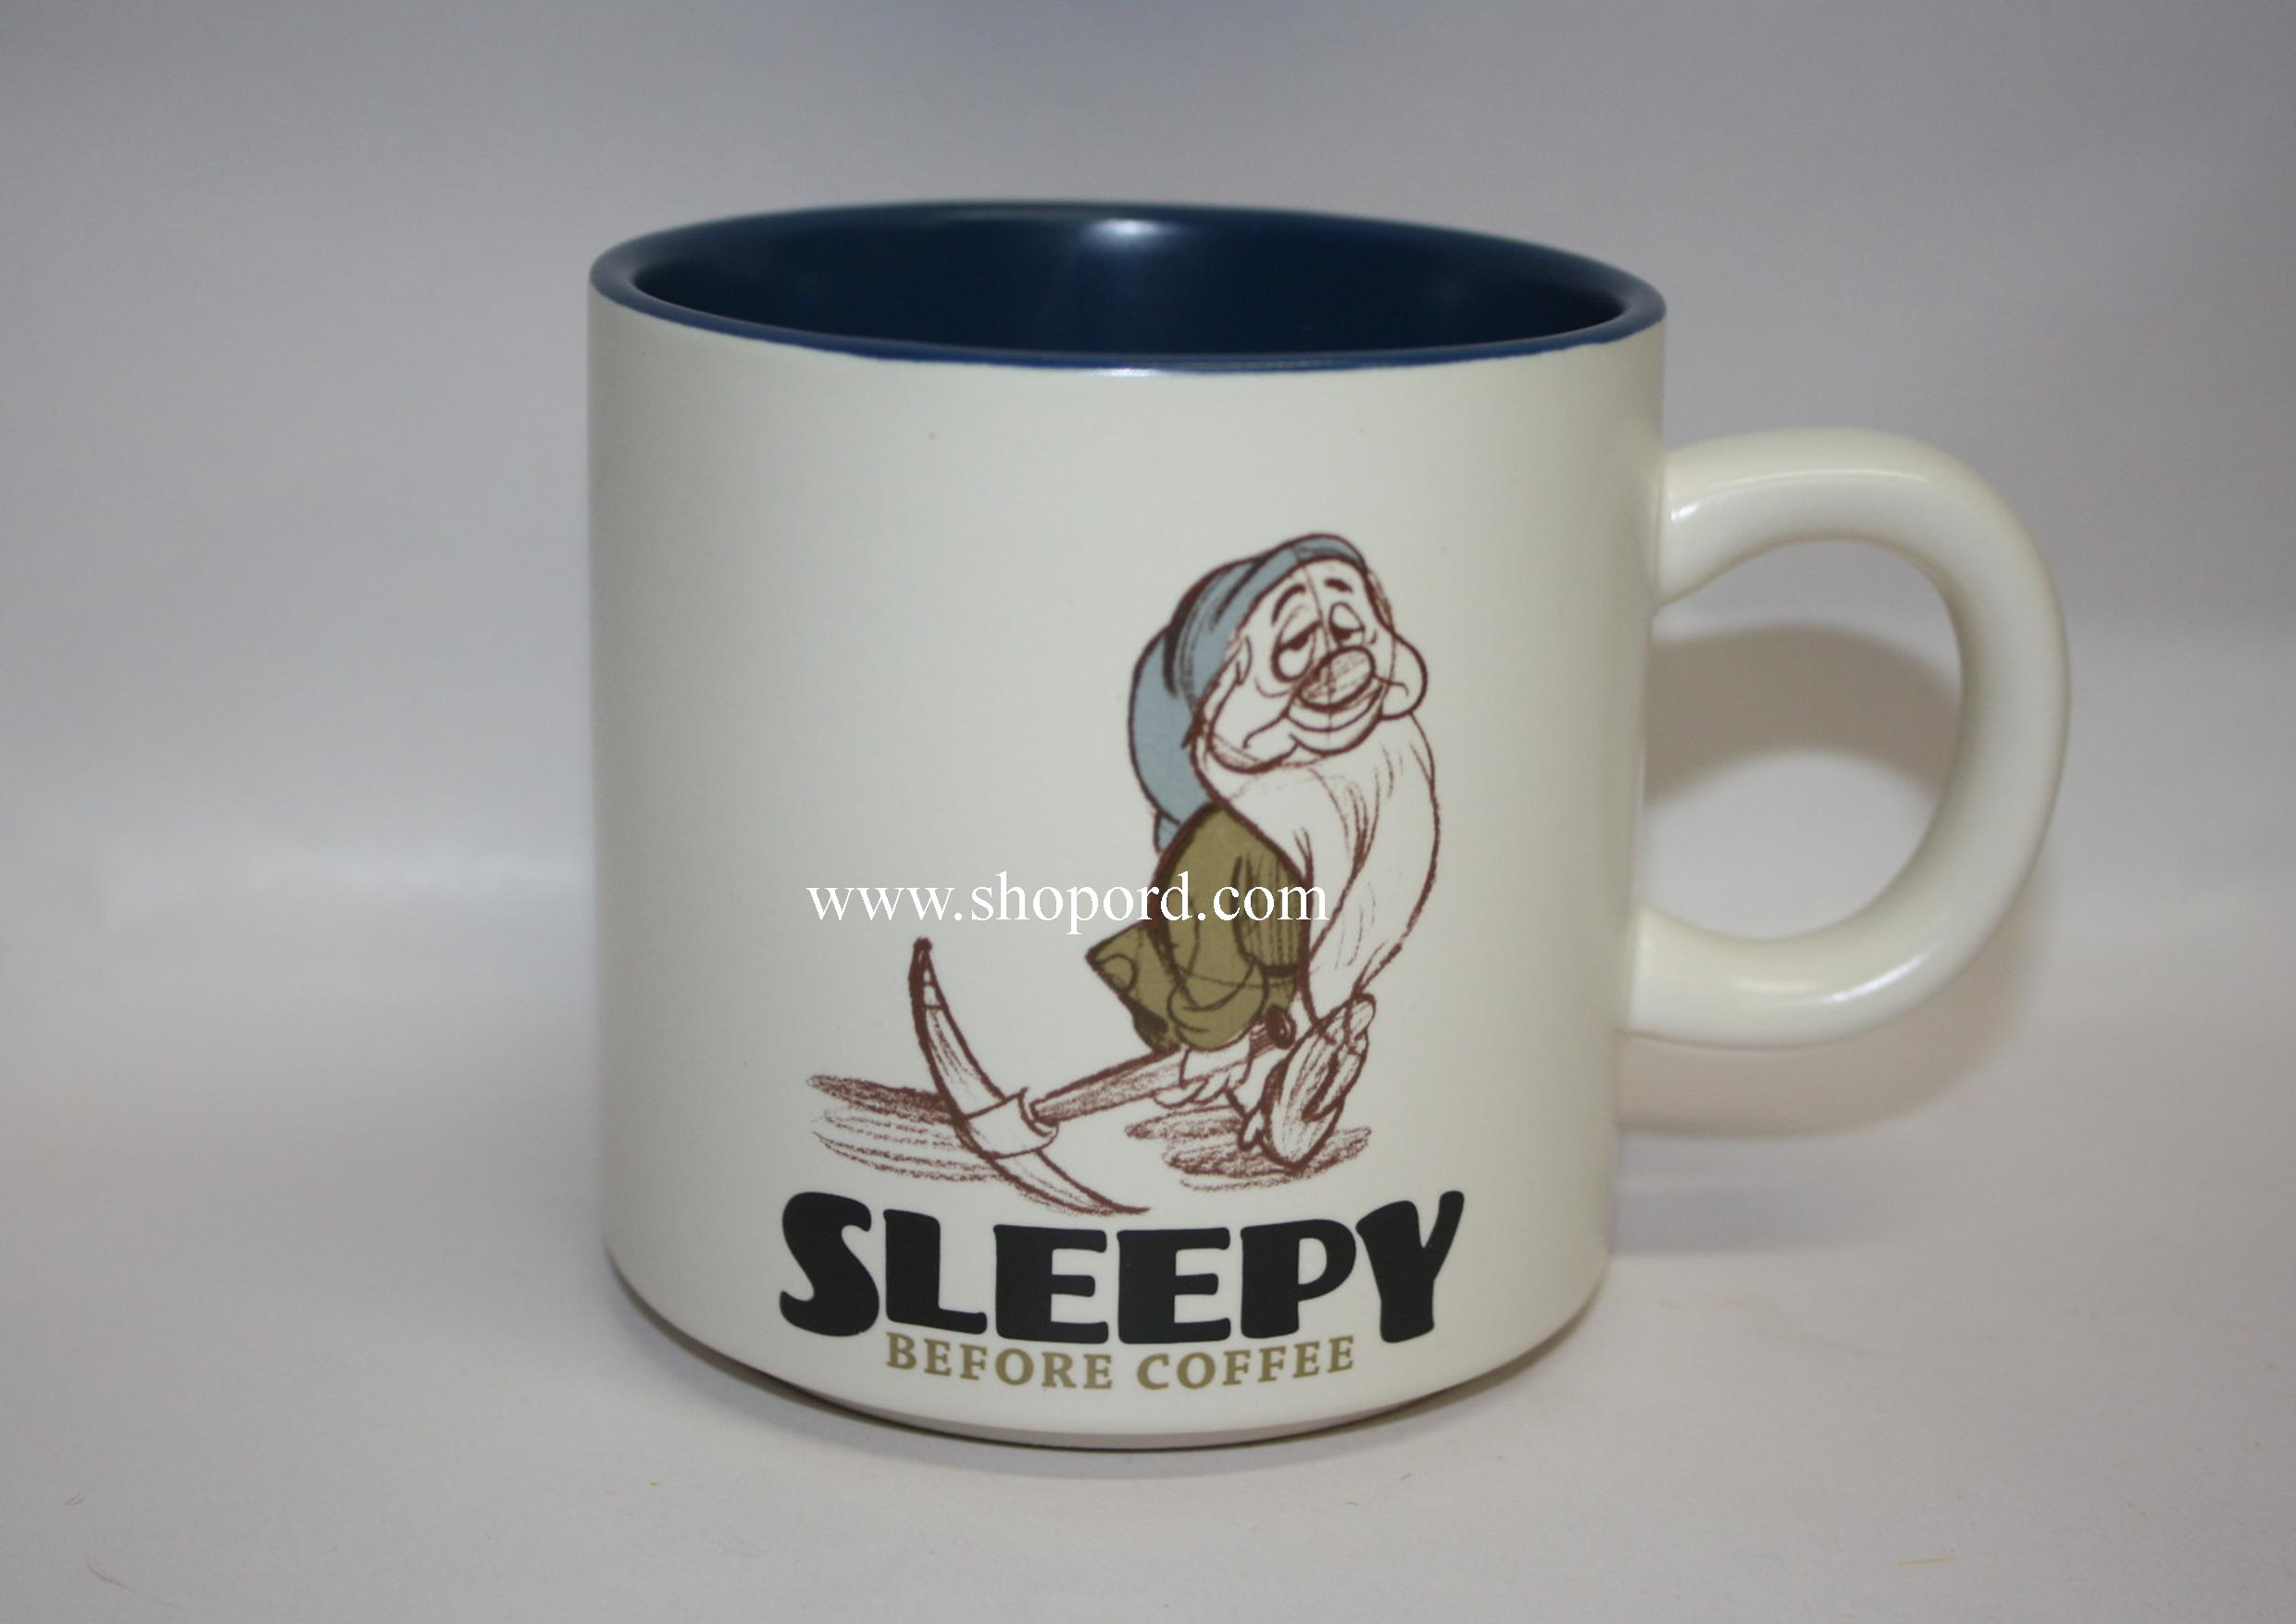 hallmark disney sleepy  oz mug snow white and the seven dwarfs  - hallmark disney sleepy  oz mug snow white and the seven dwarfs dyg